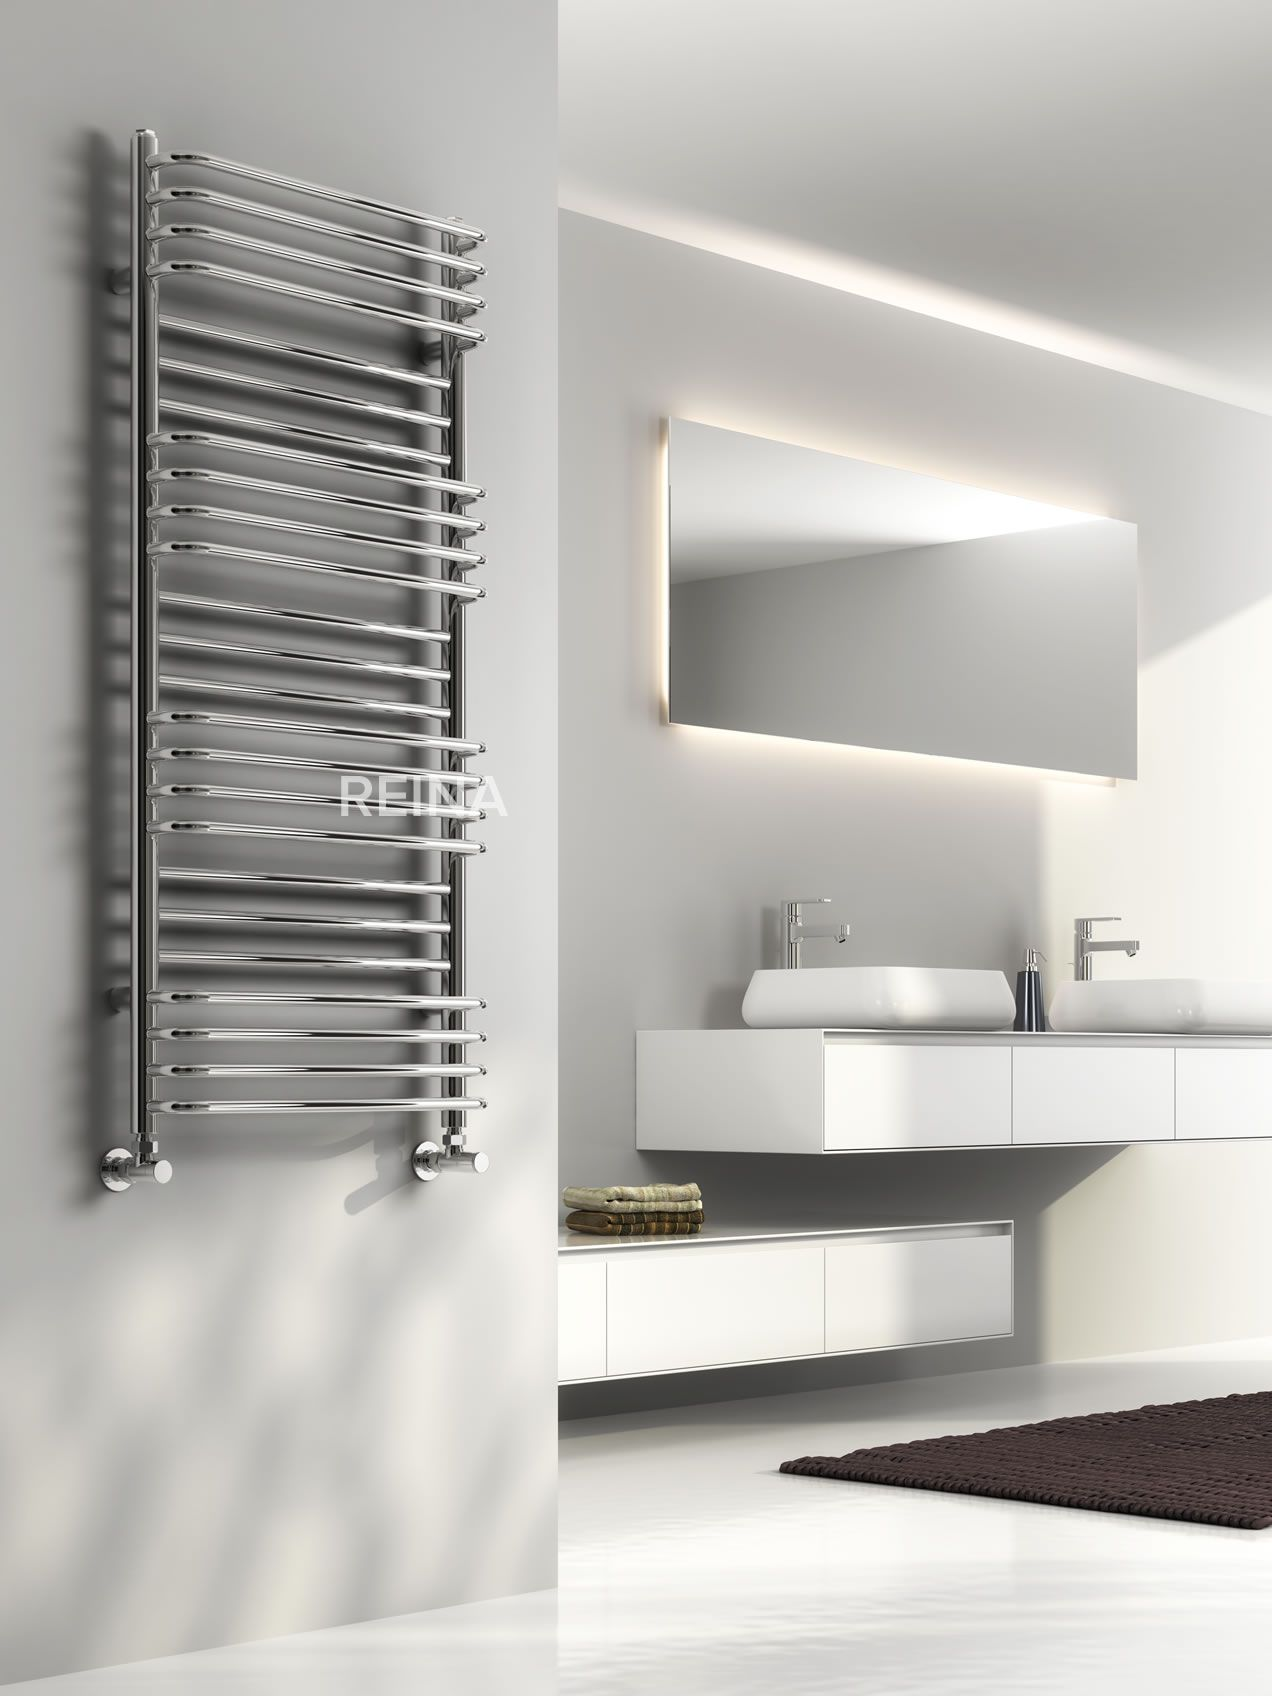 The Reina Marco Designer Heated Towel Rail